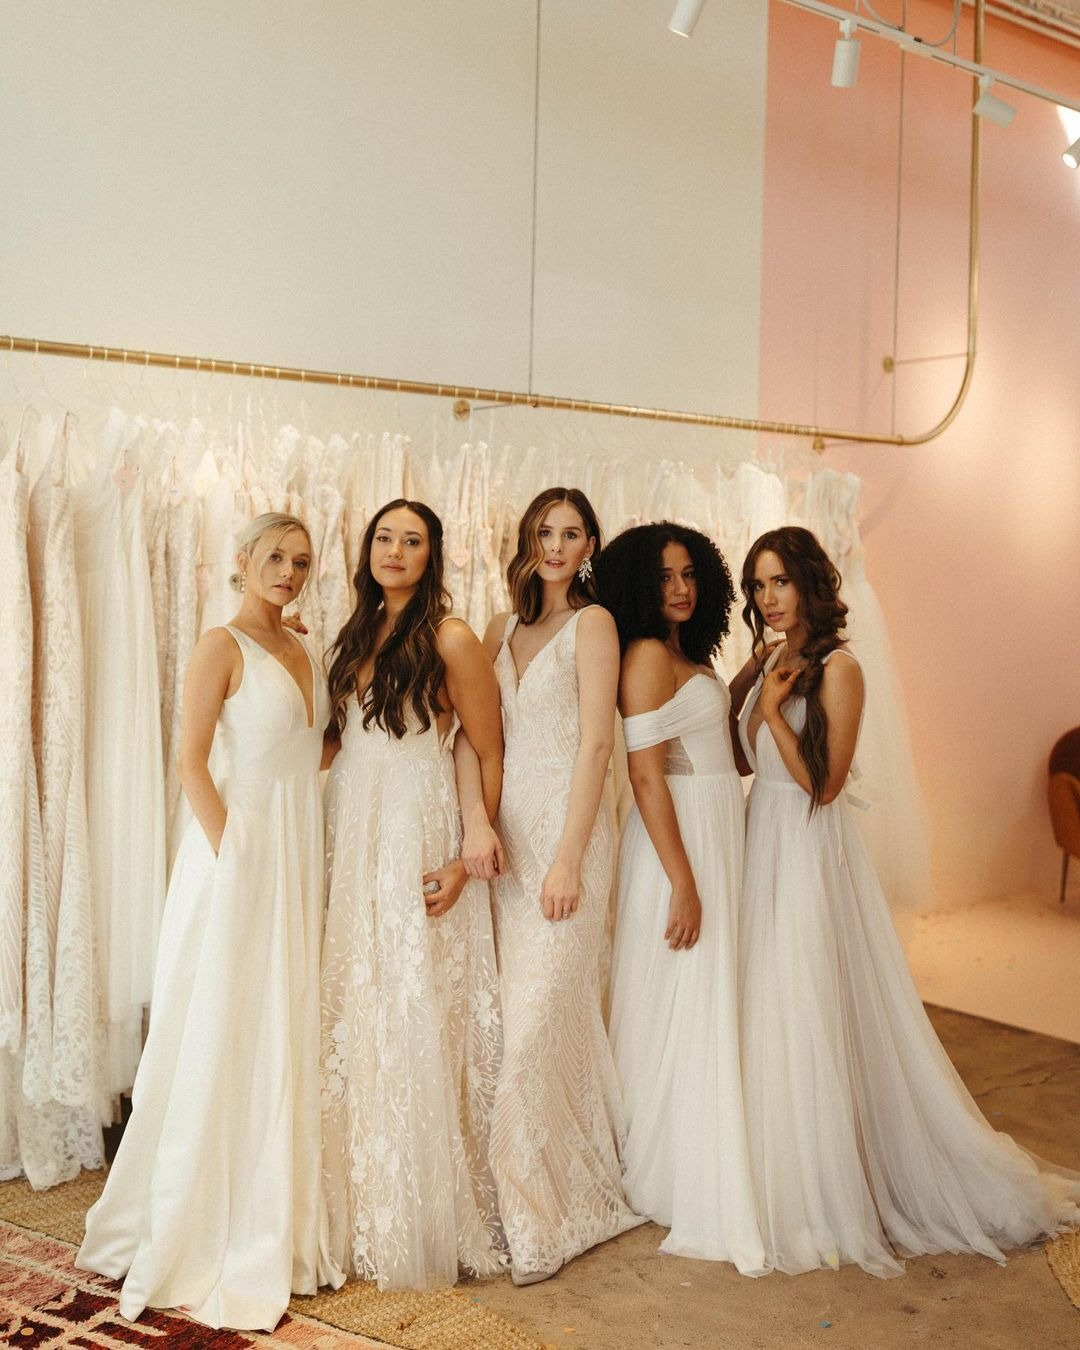 collection of wedding gowns from Vow'd